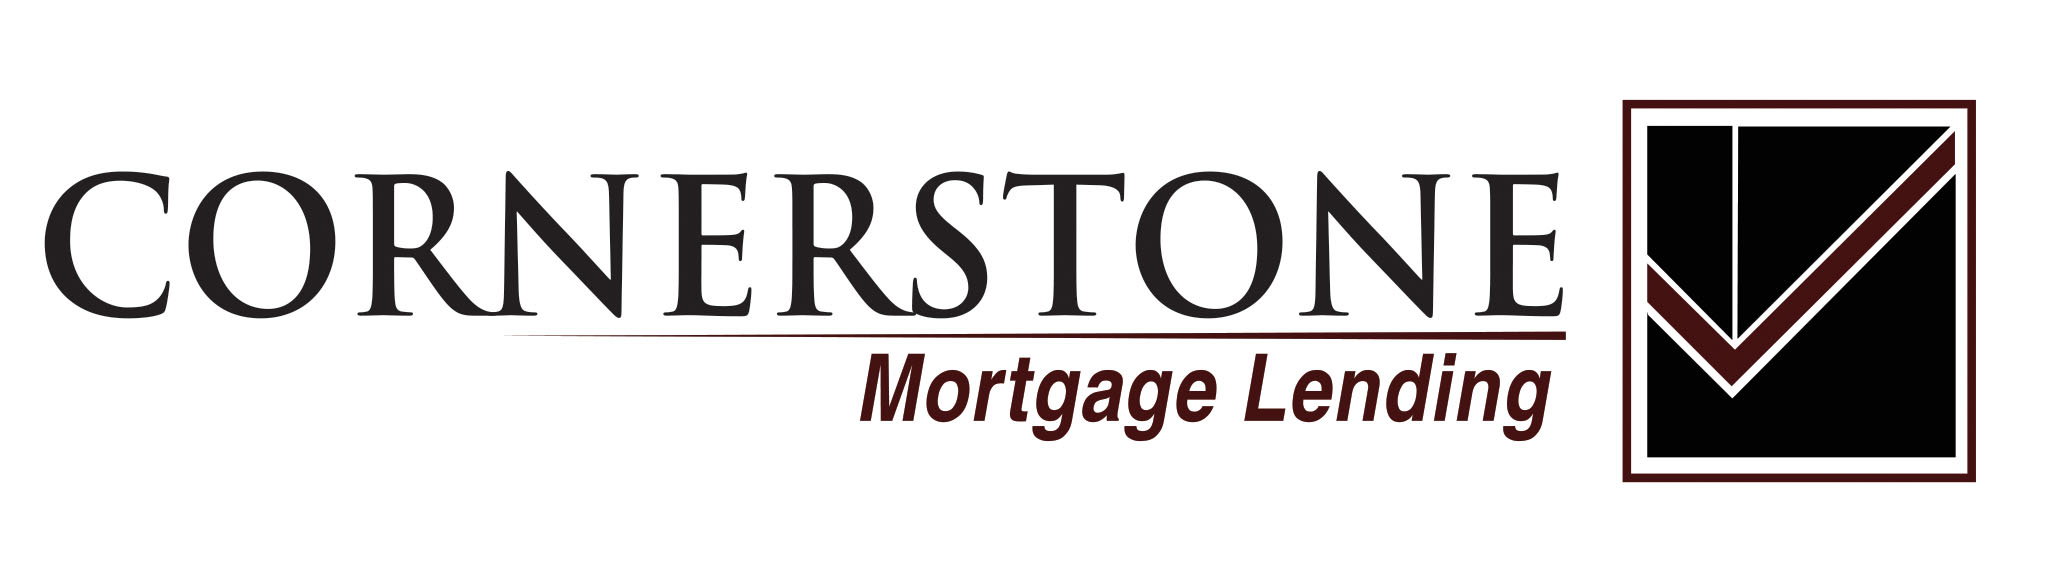 Cornerstone Mortgage Logo